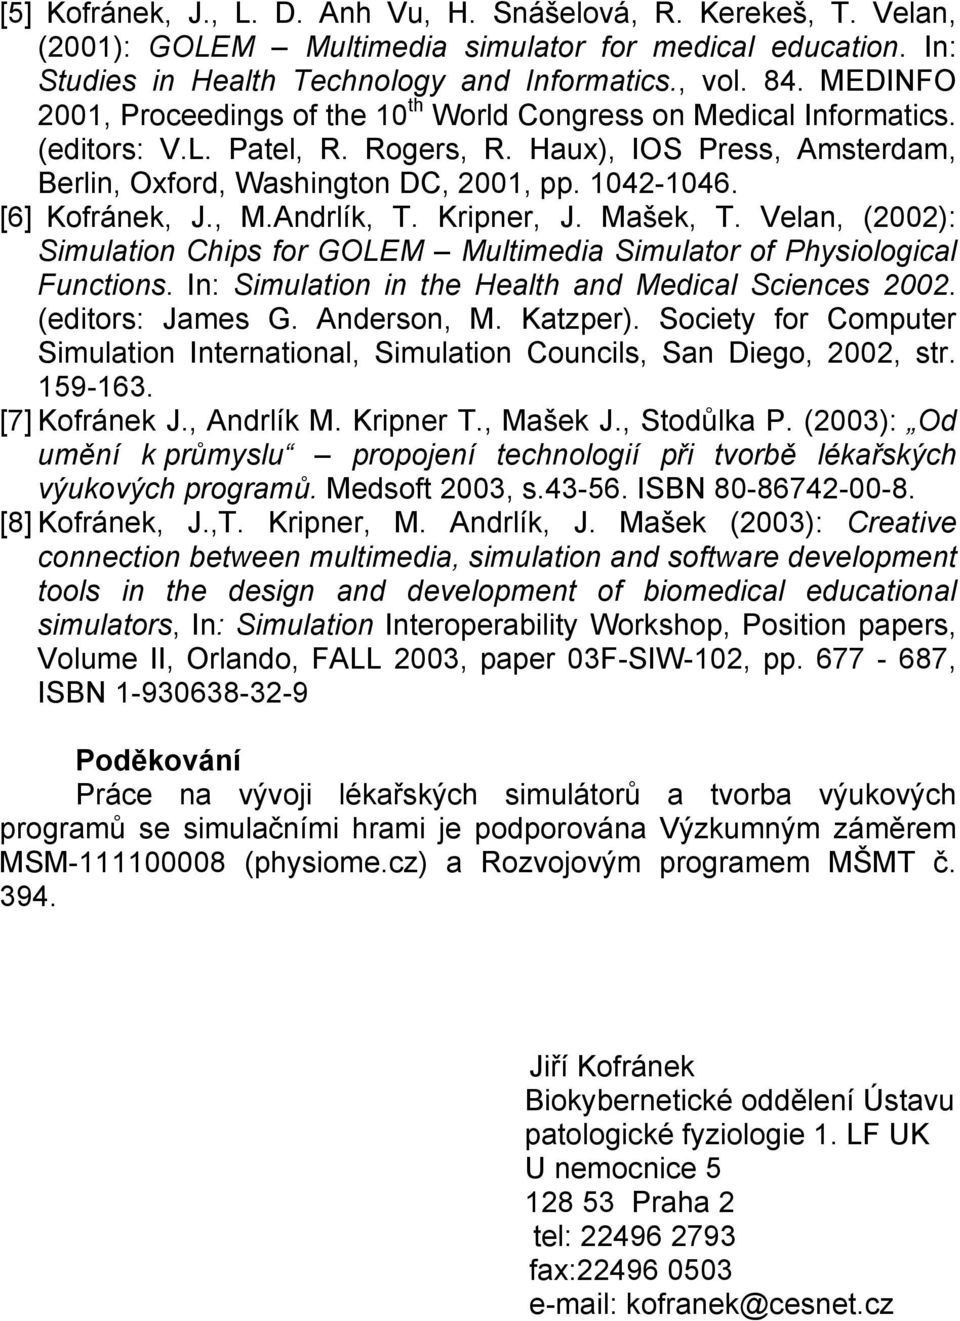 [6] Kofránek, J., M.Andrlík, T. Kripner, J. Mašek, T. Velan, (2002): Simulation Chips for GOLEM Multimedia Simulator of Physiological Functions. In: Simulation in the Health and Medical Sciences 2002.